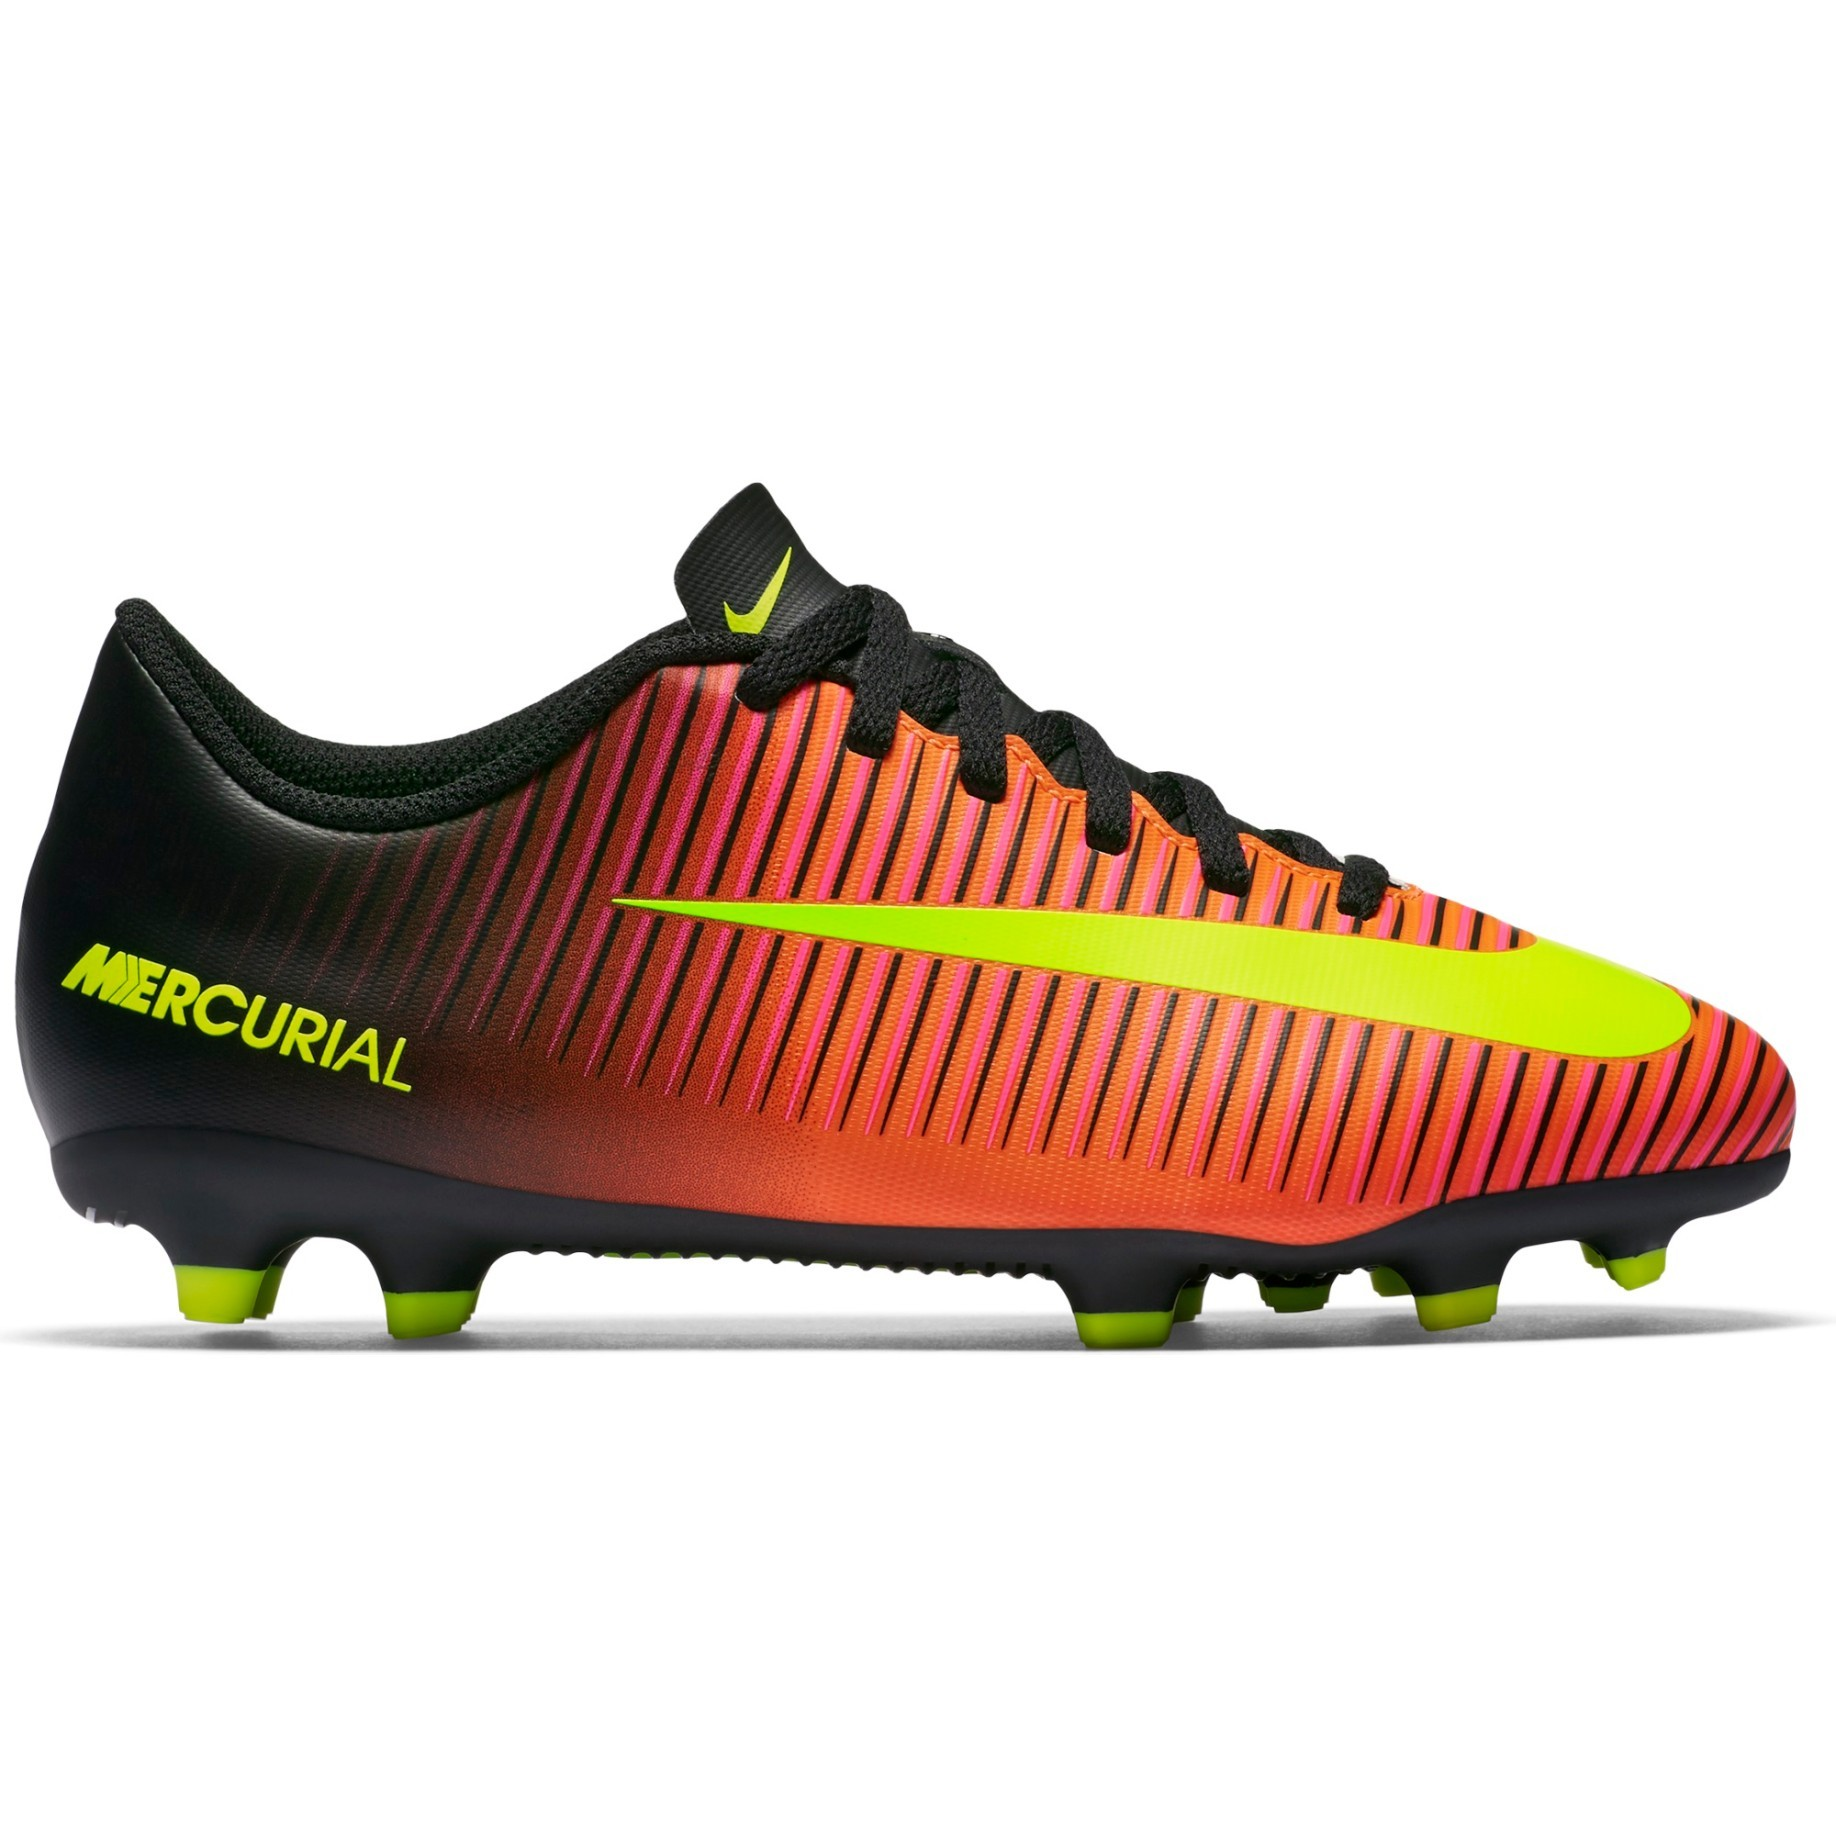 nike superfly adidas calcio